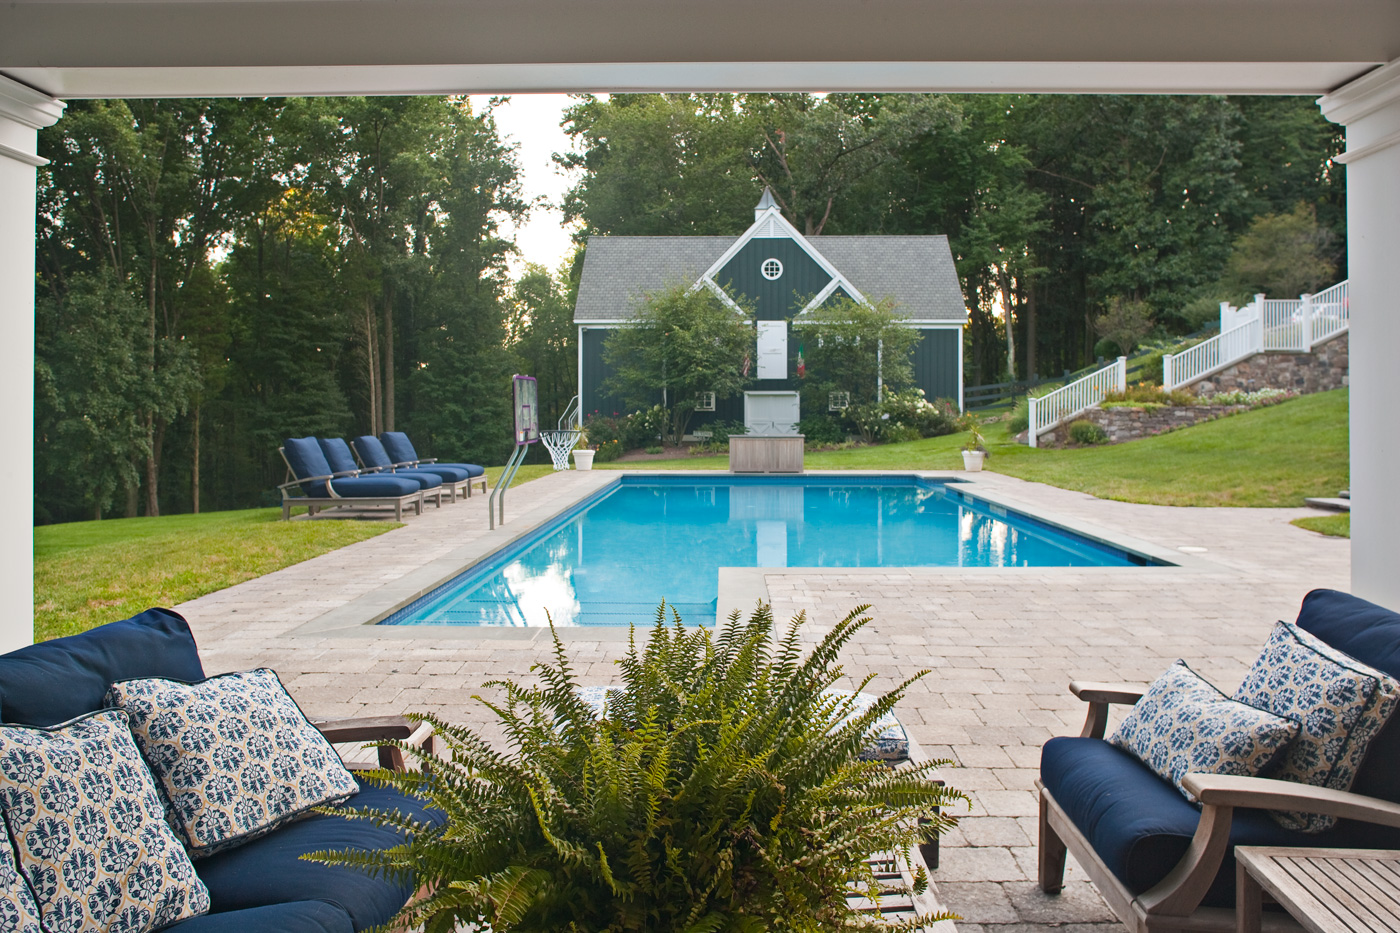 Formal Swimming Pool - New Jersey Landscaping